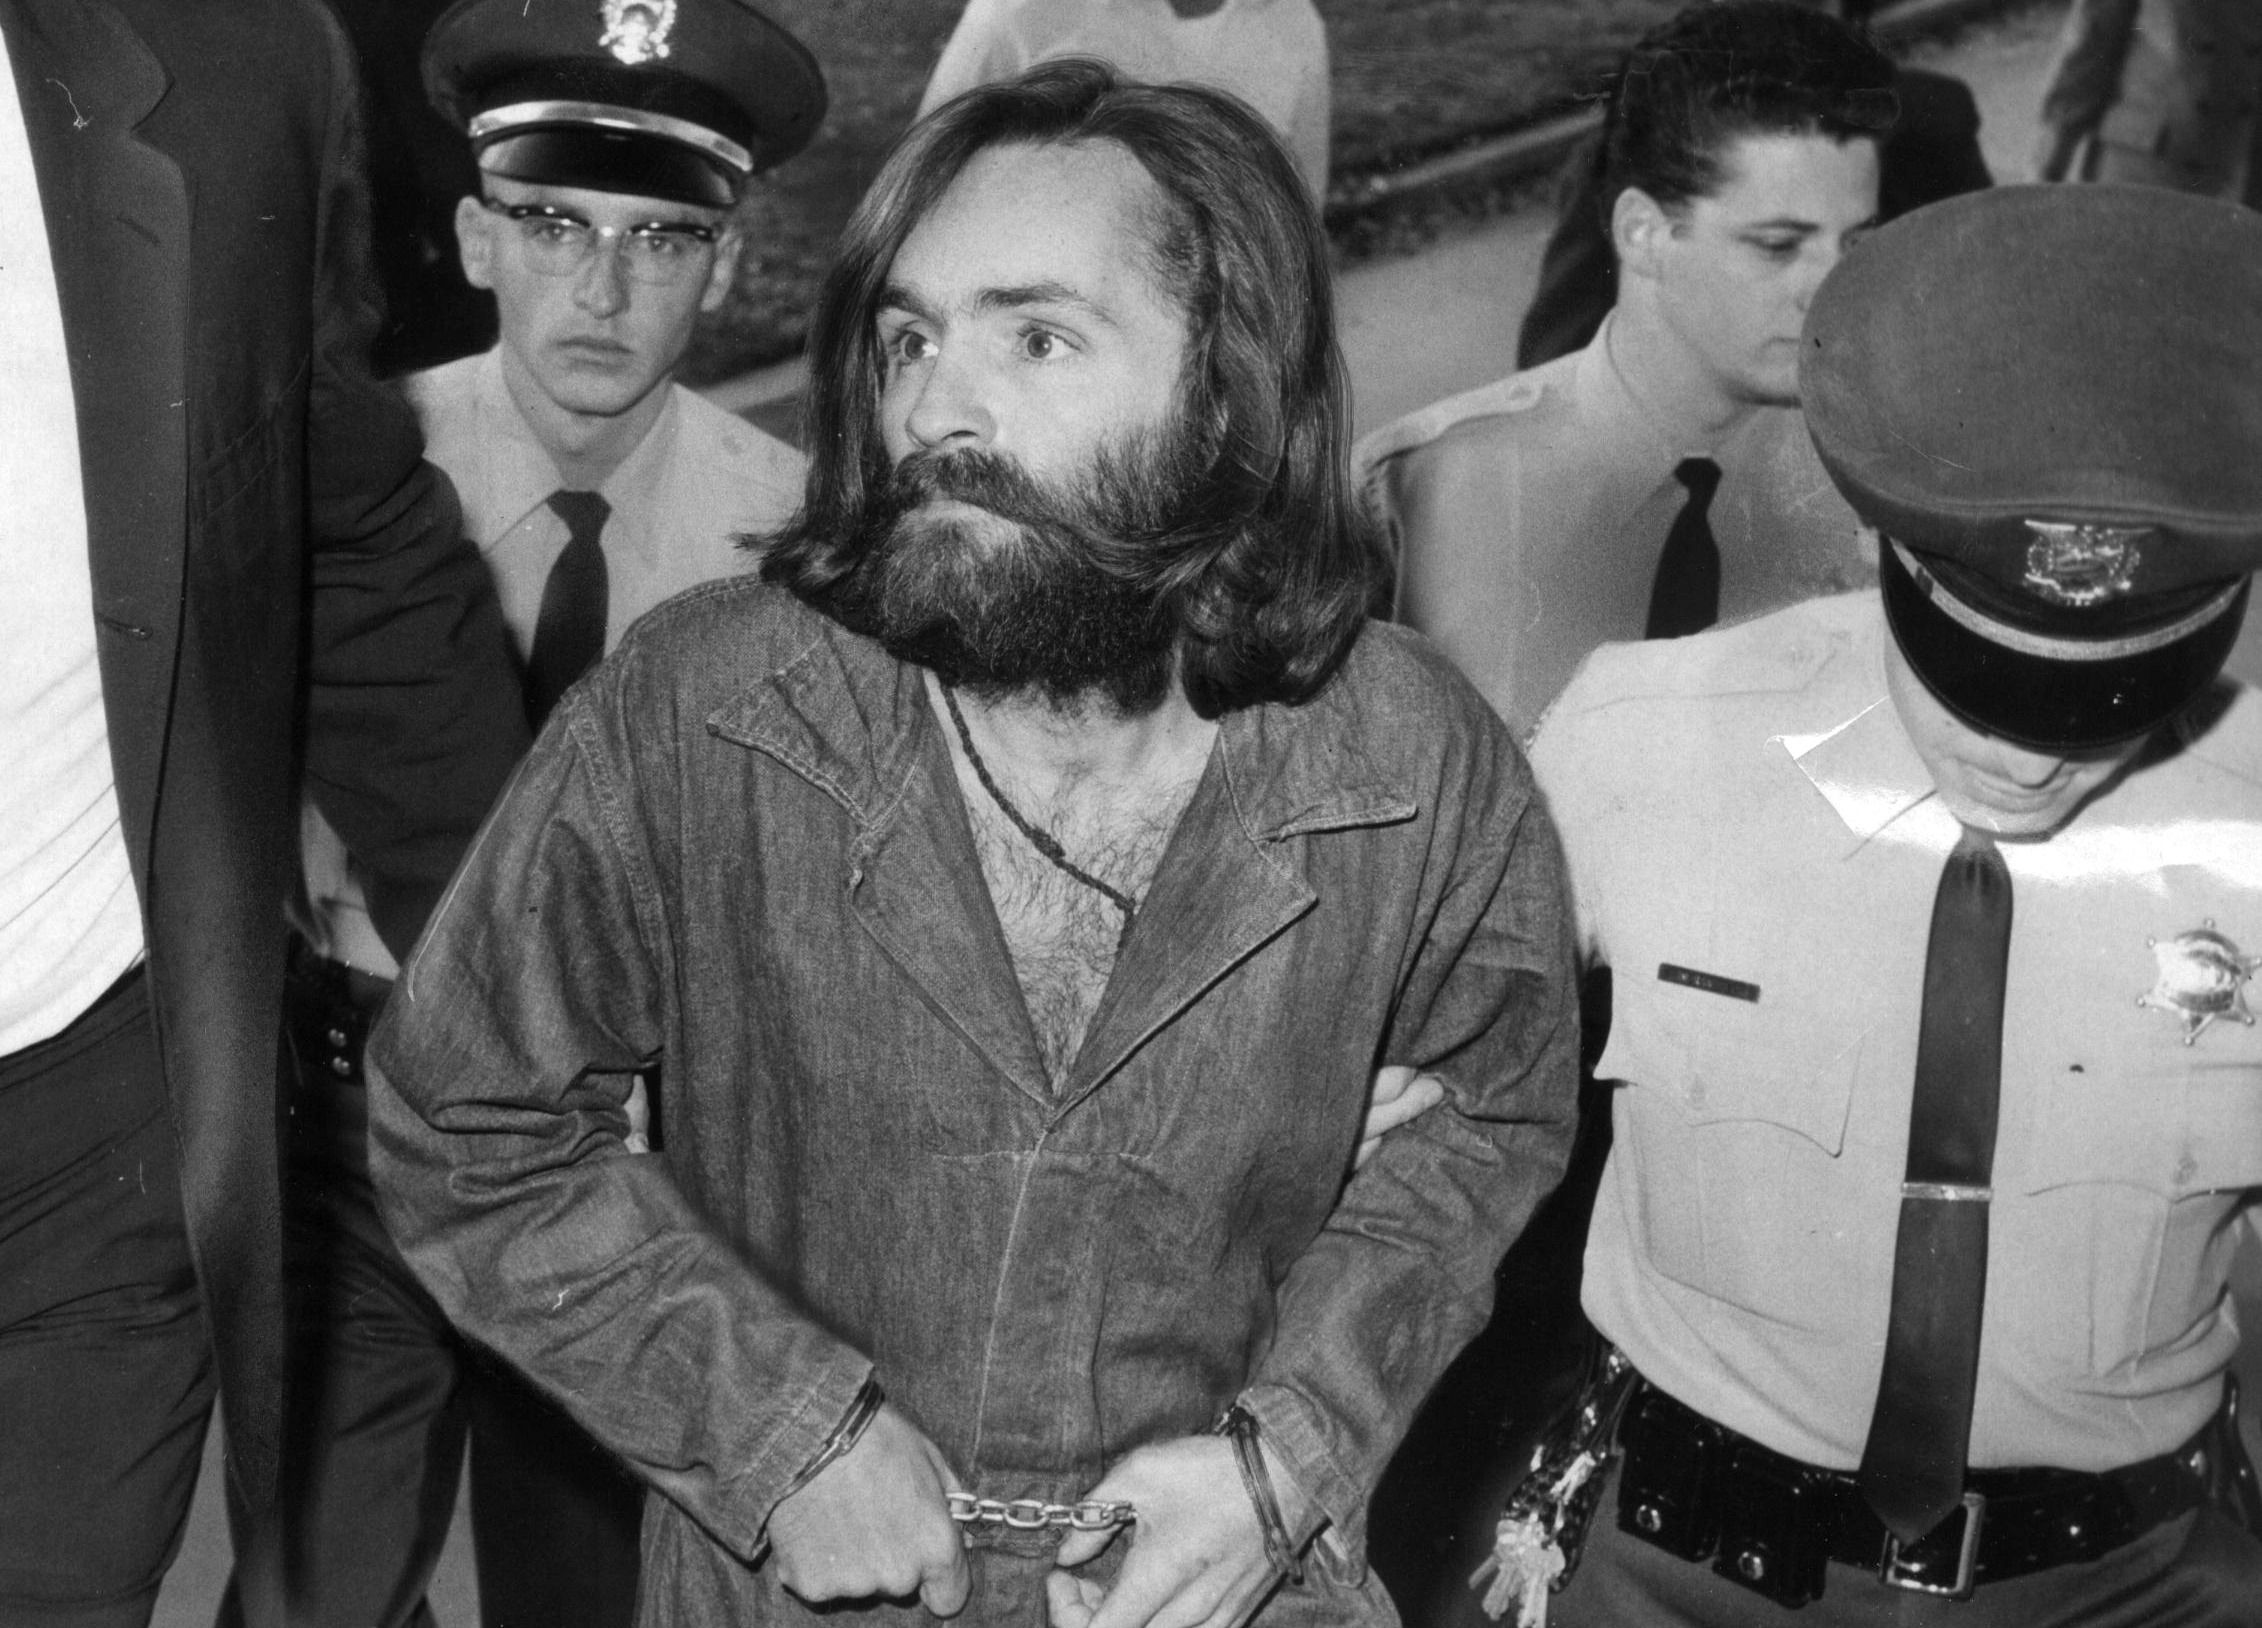 The True Story of Charles Manson, Helter Skelter, and the Manson Family